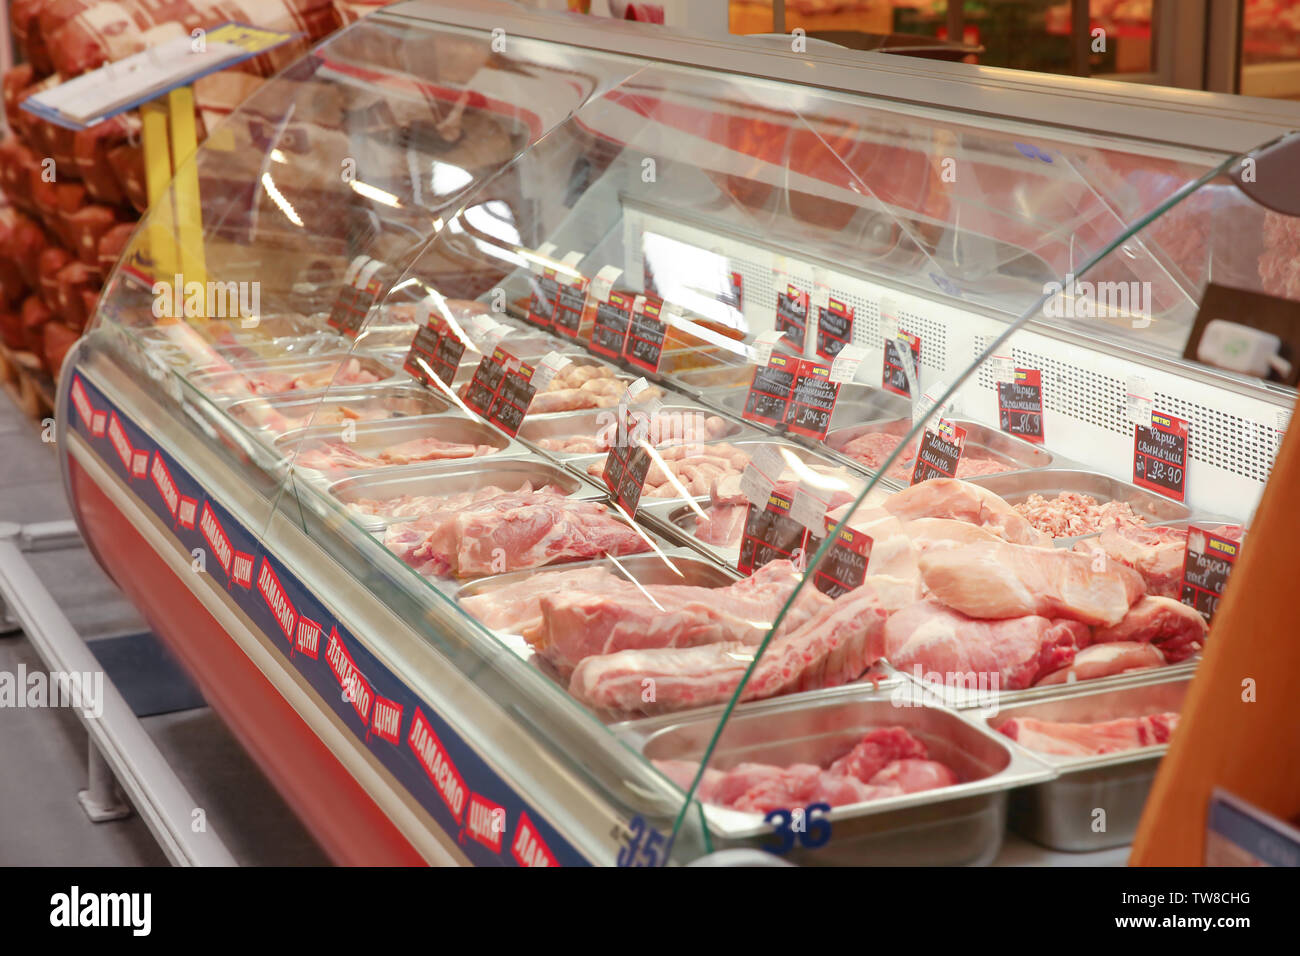 MYKOLAIV, UKRAINE - October 31, 2017: Refrigerated display case with fresh meat products in hypermarket METRO - Stock Image